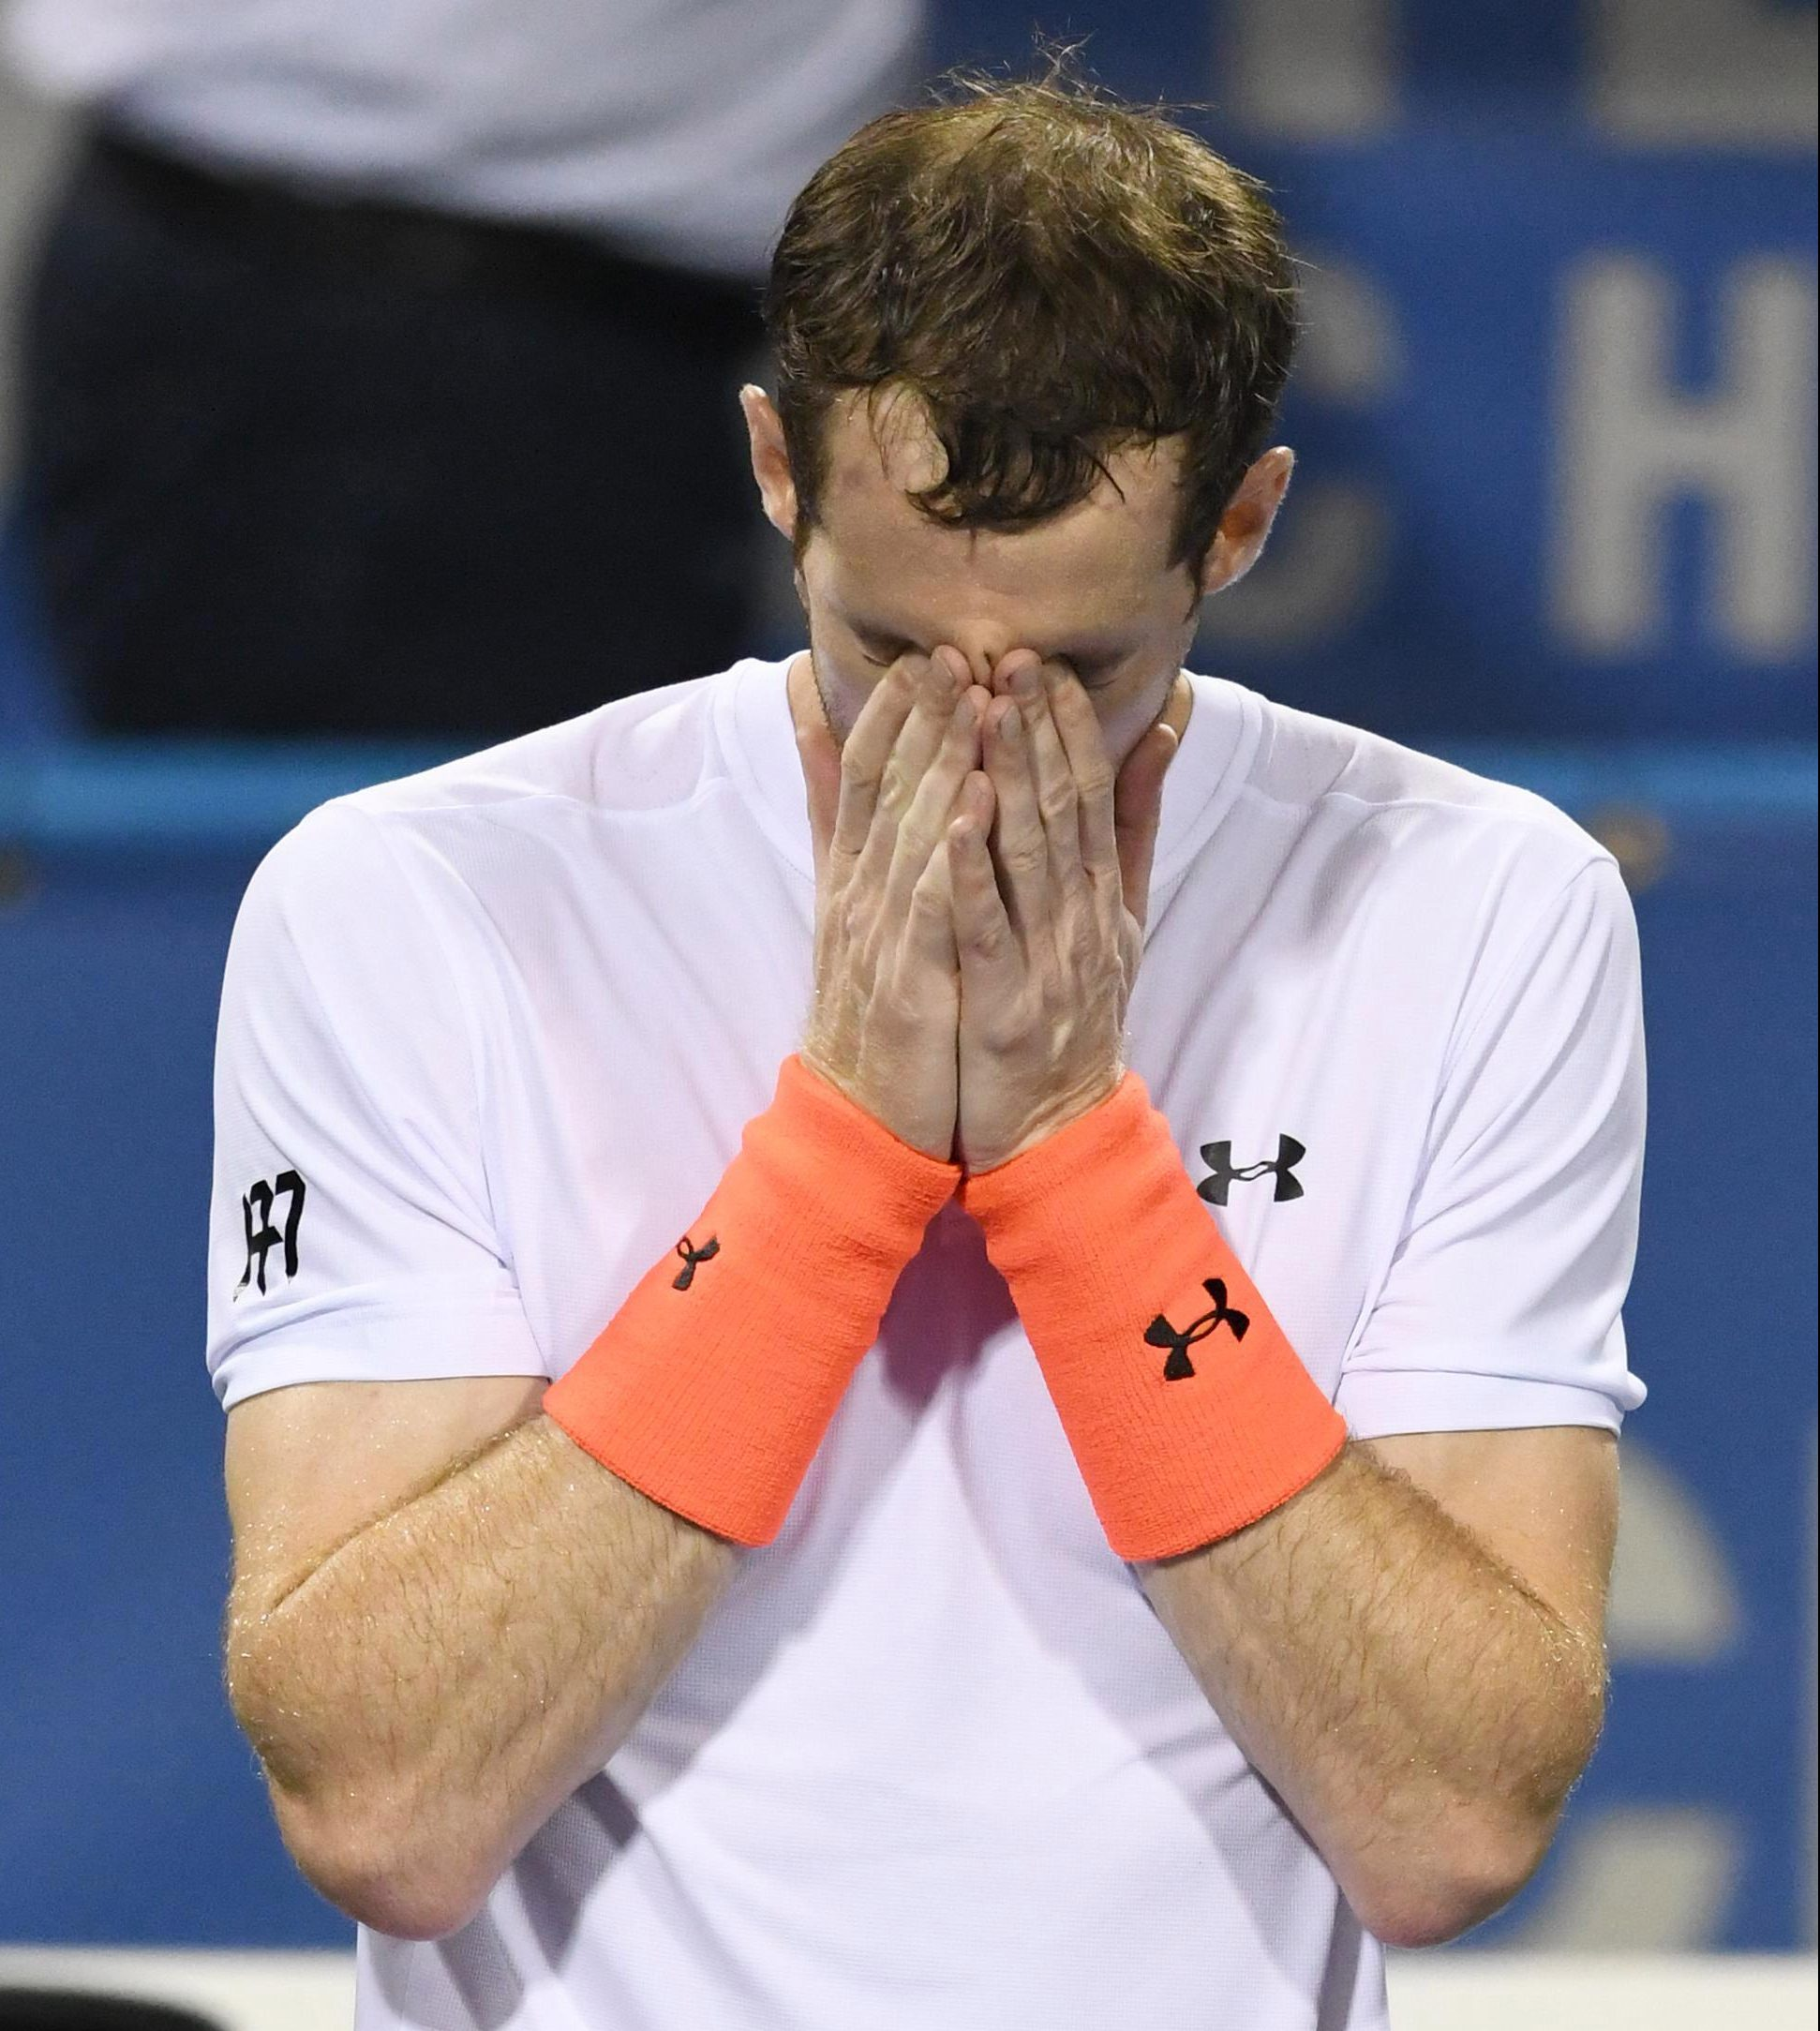 Andy Murray broke down in floods of tears at the end of a marathon three-set win over Marius Copil